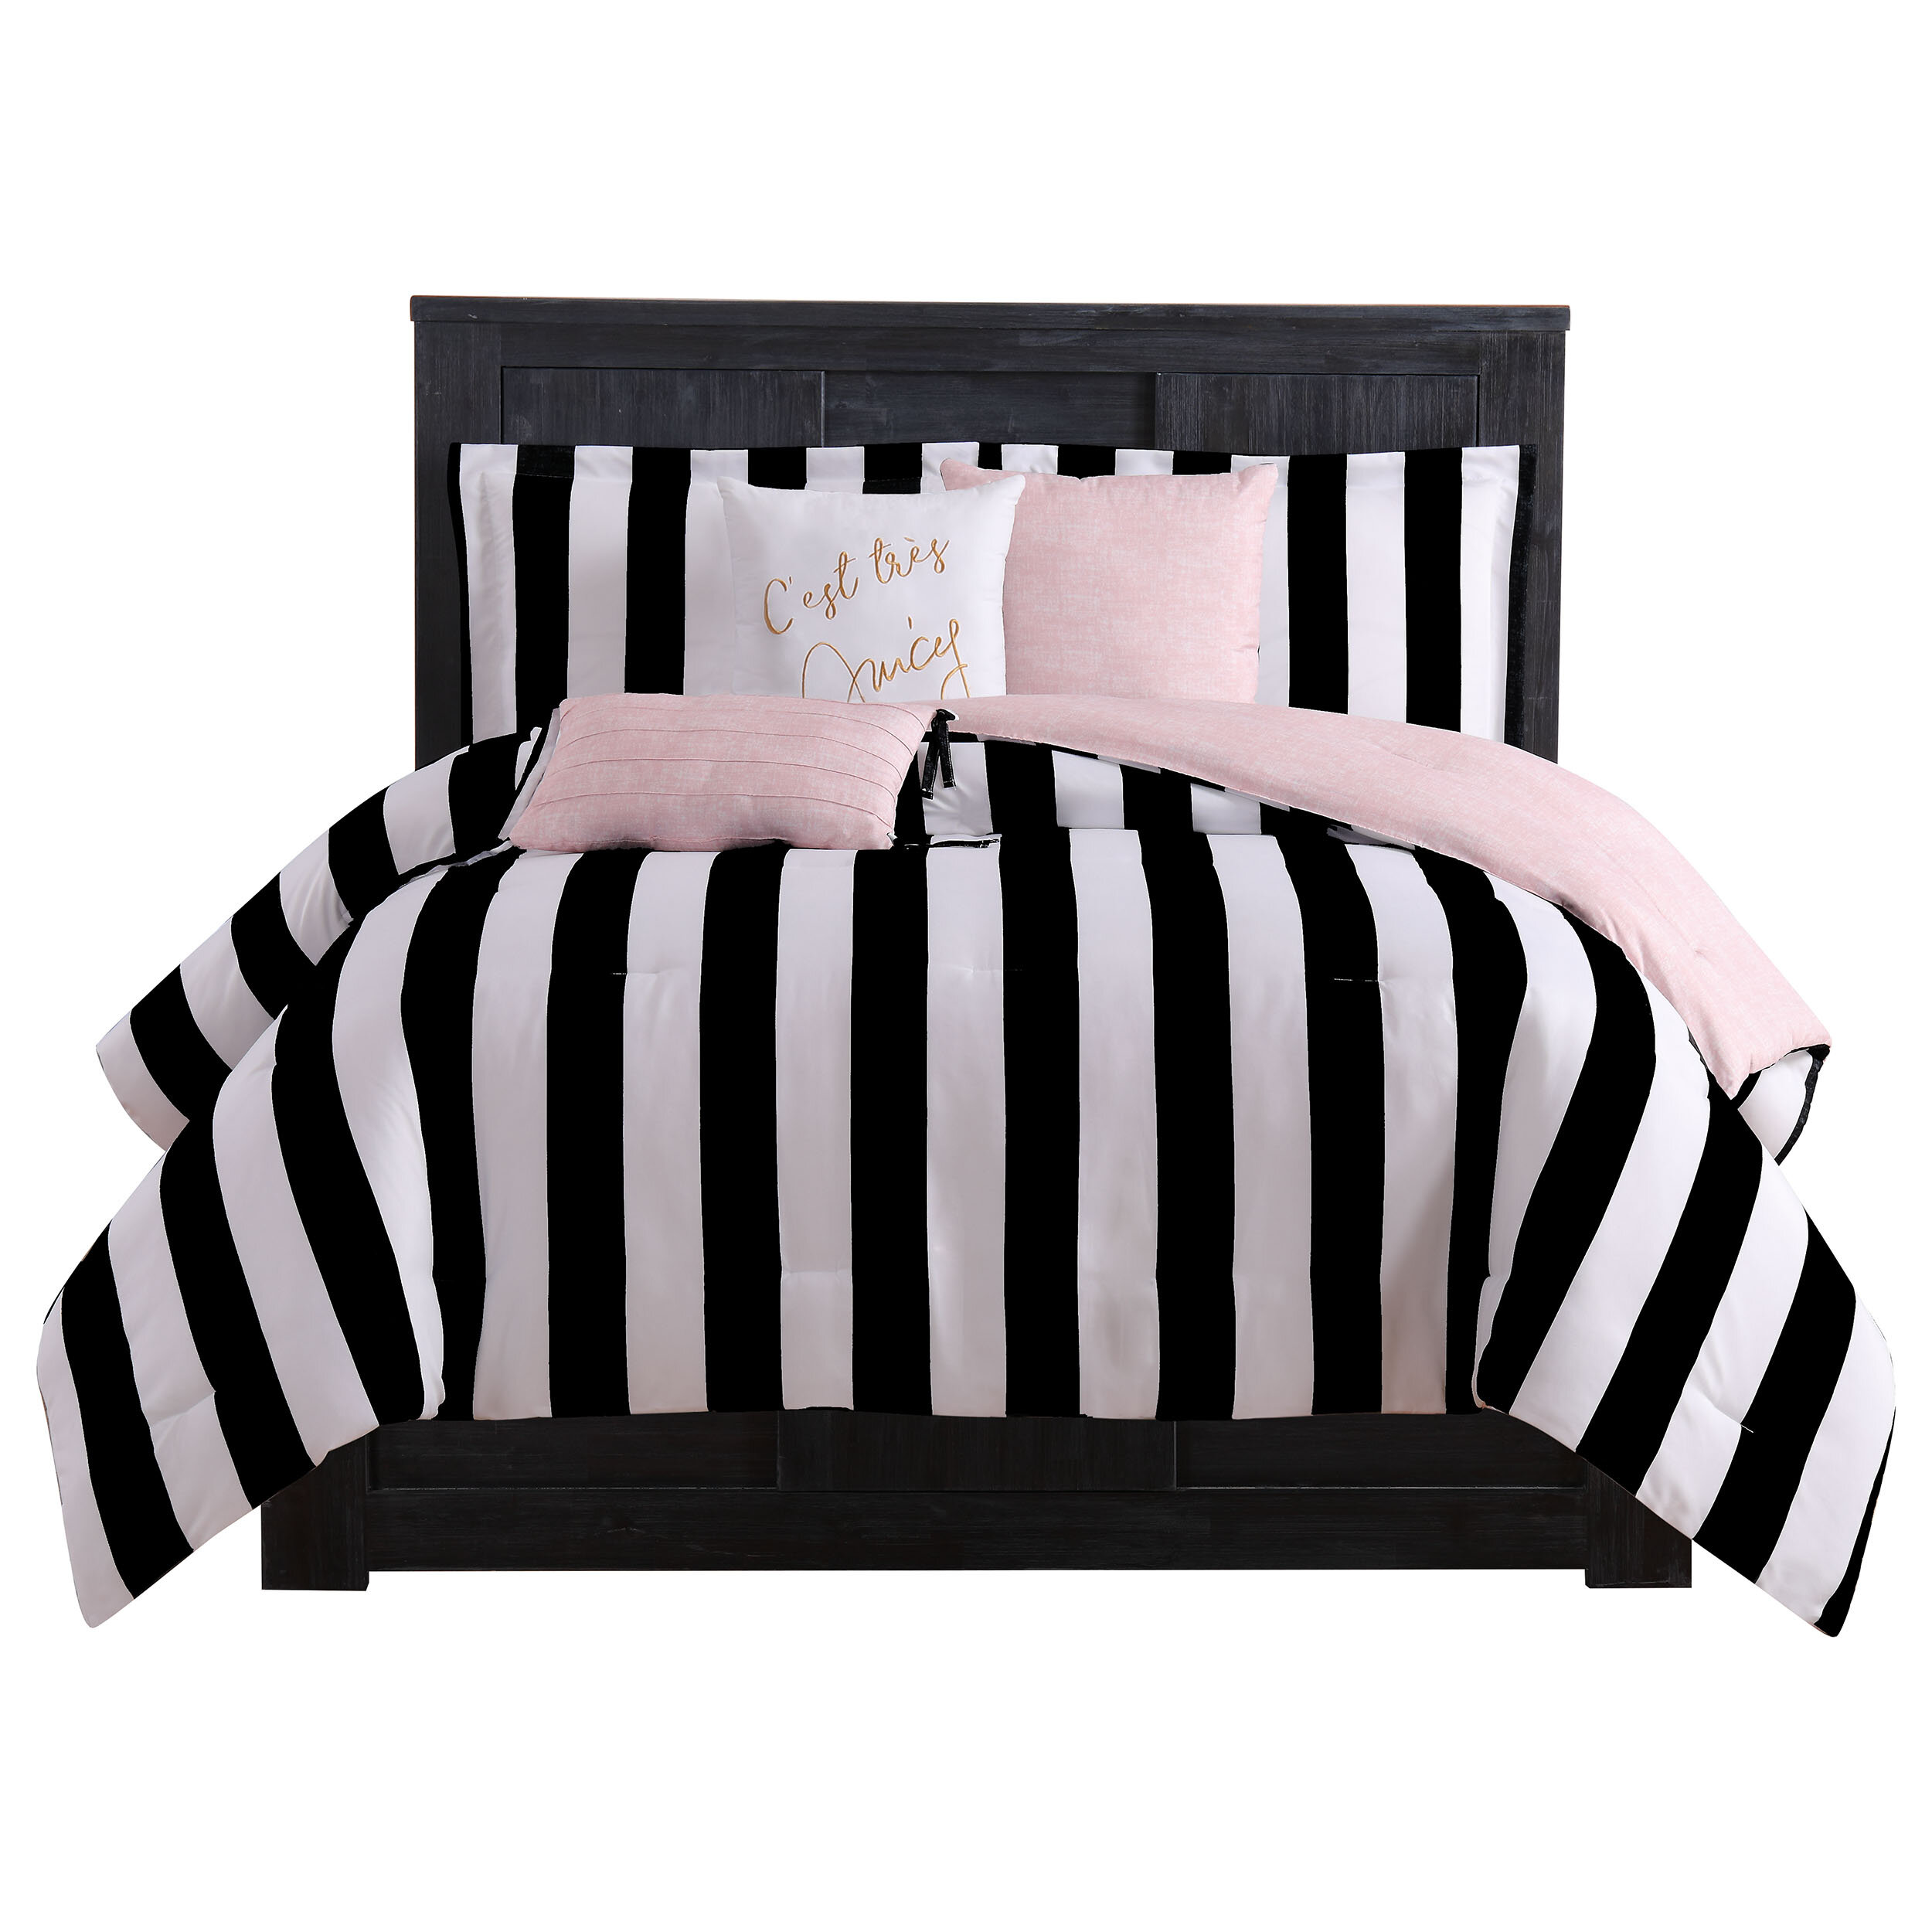 Juicy Couture Reversible Striped 6 Piece Comforter Set & Reviews